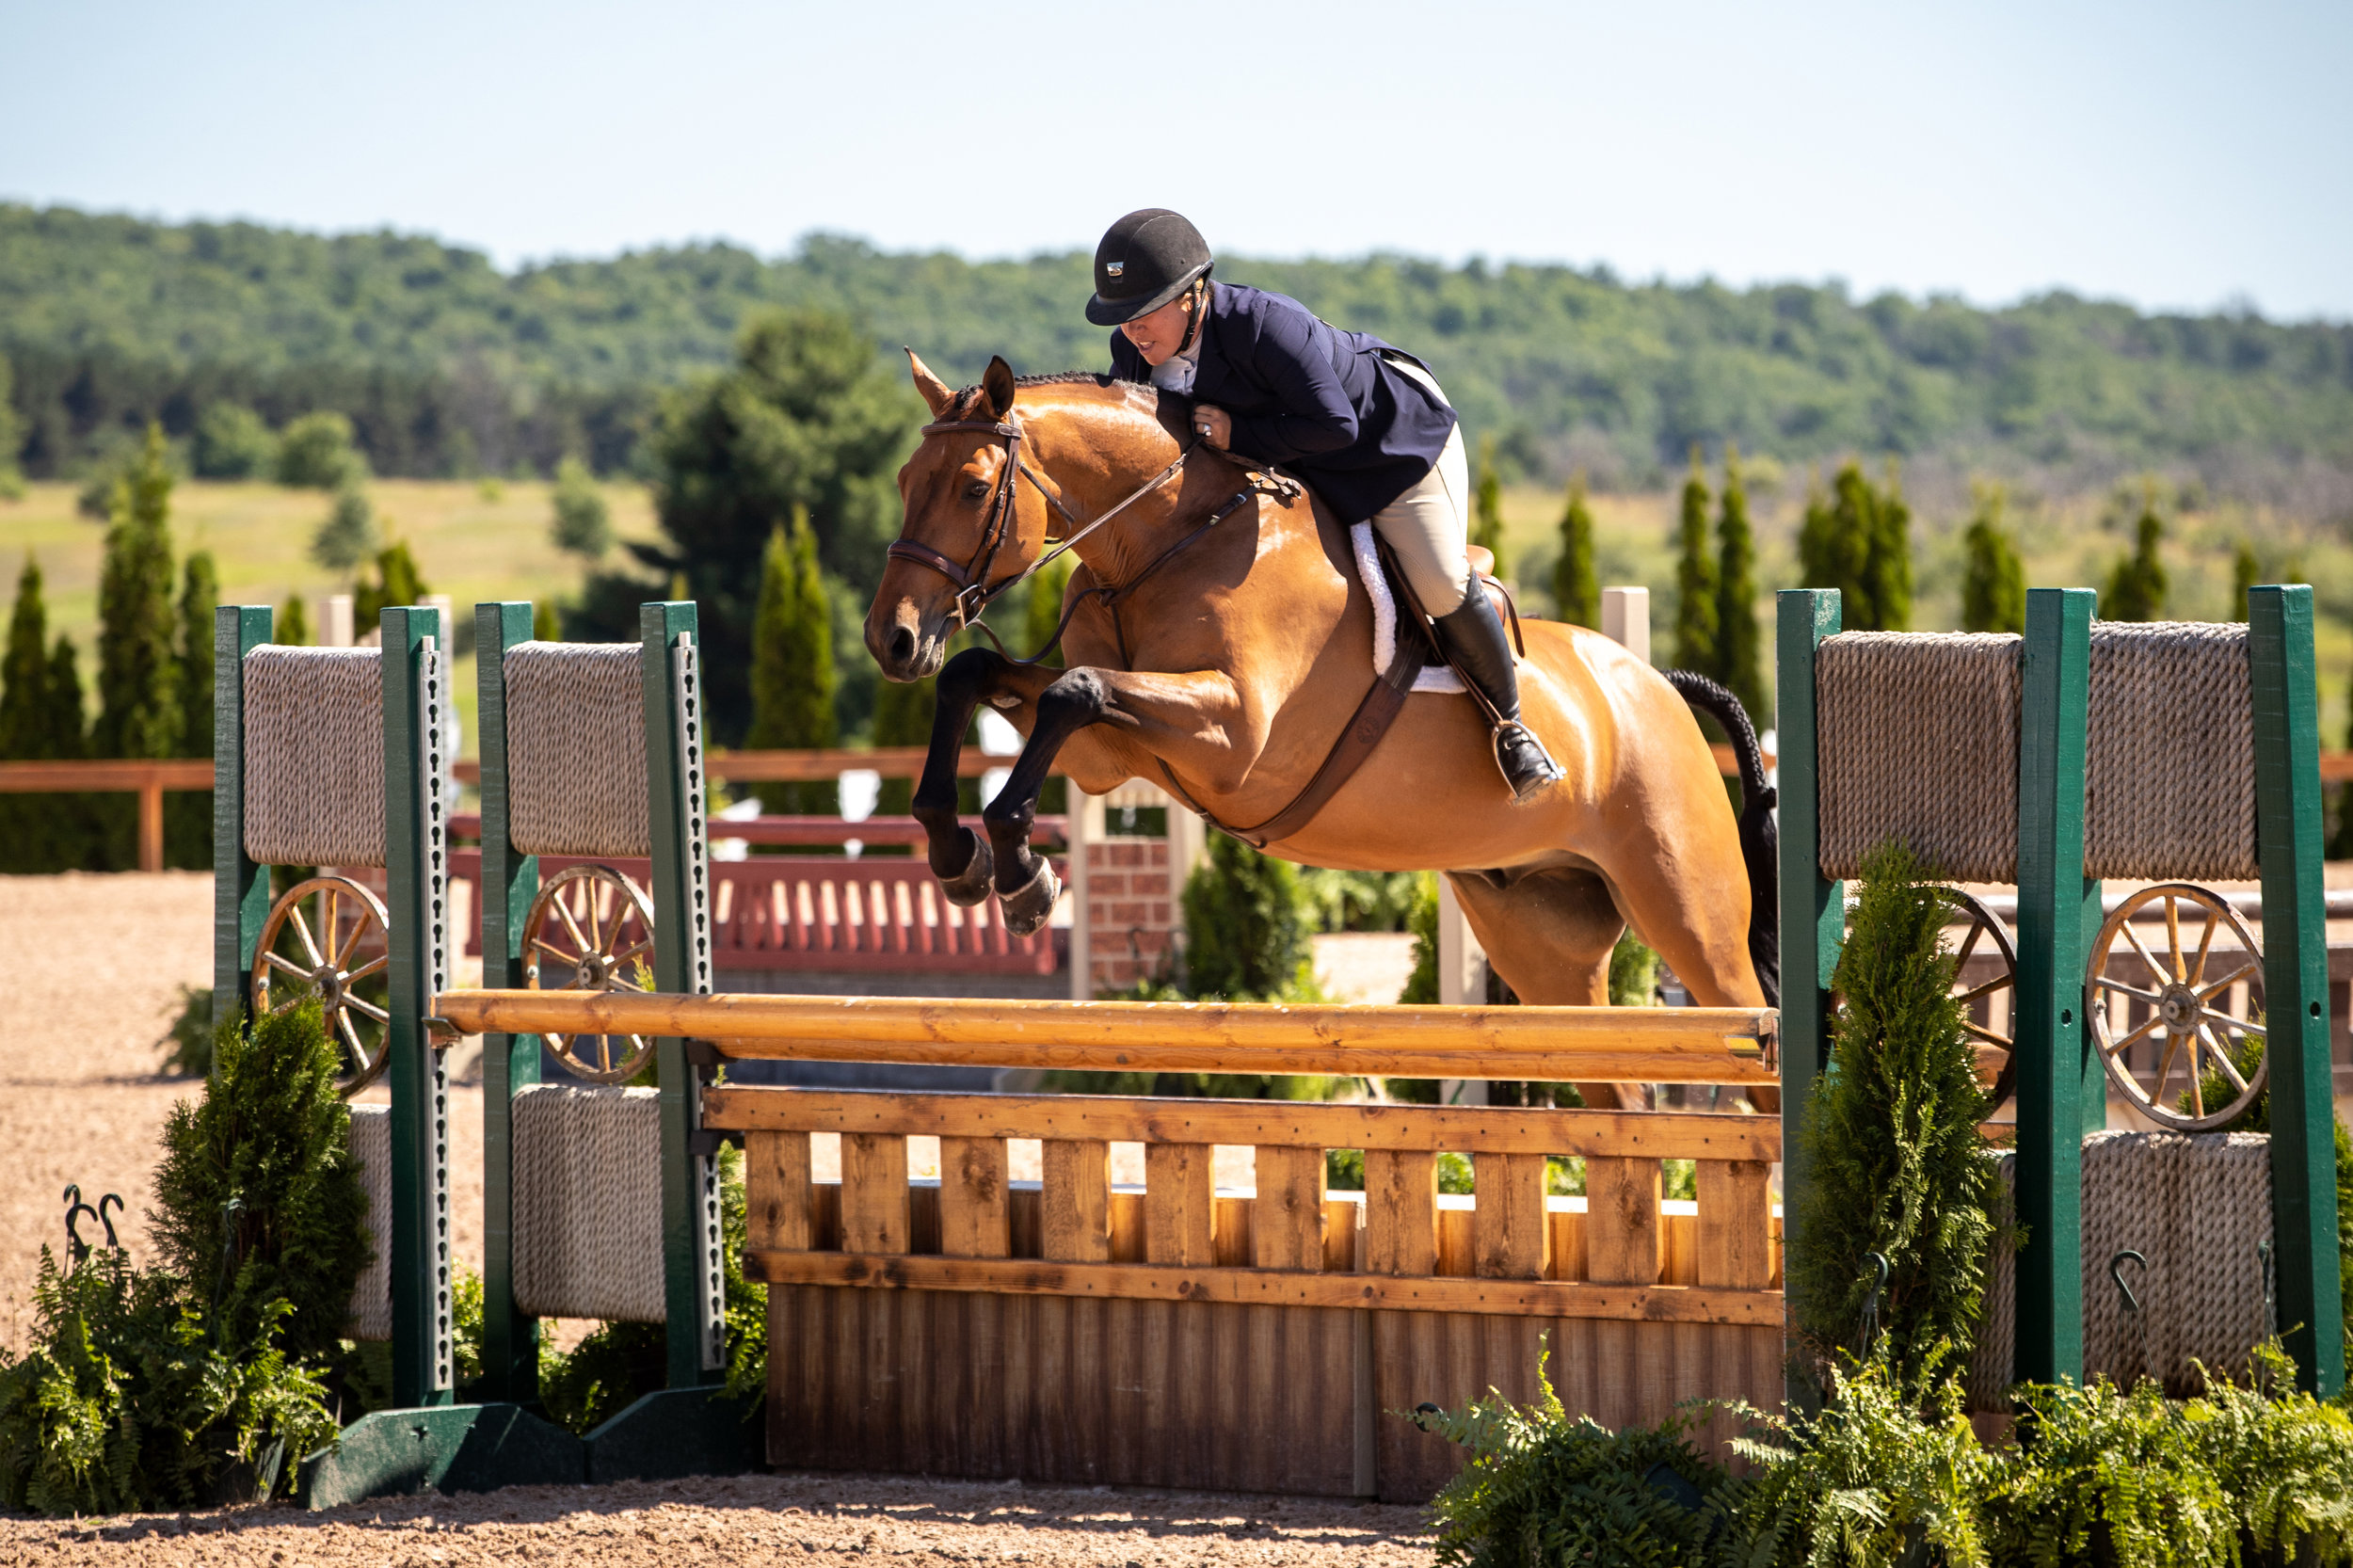 Michelle Durpetti and Lucca had awesome rounds all weekend in the Amateur-Owner Hunters, with ribbons including a second over fences and a fifth in the classic!